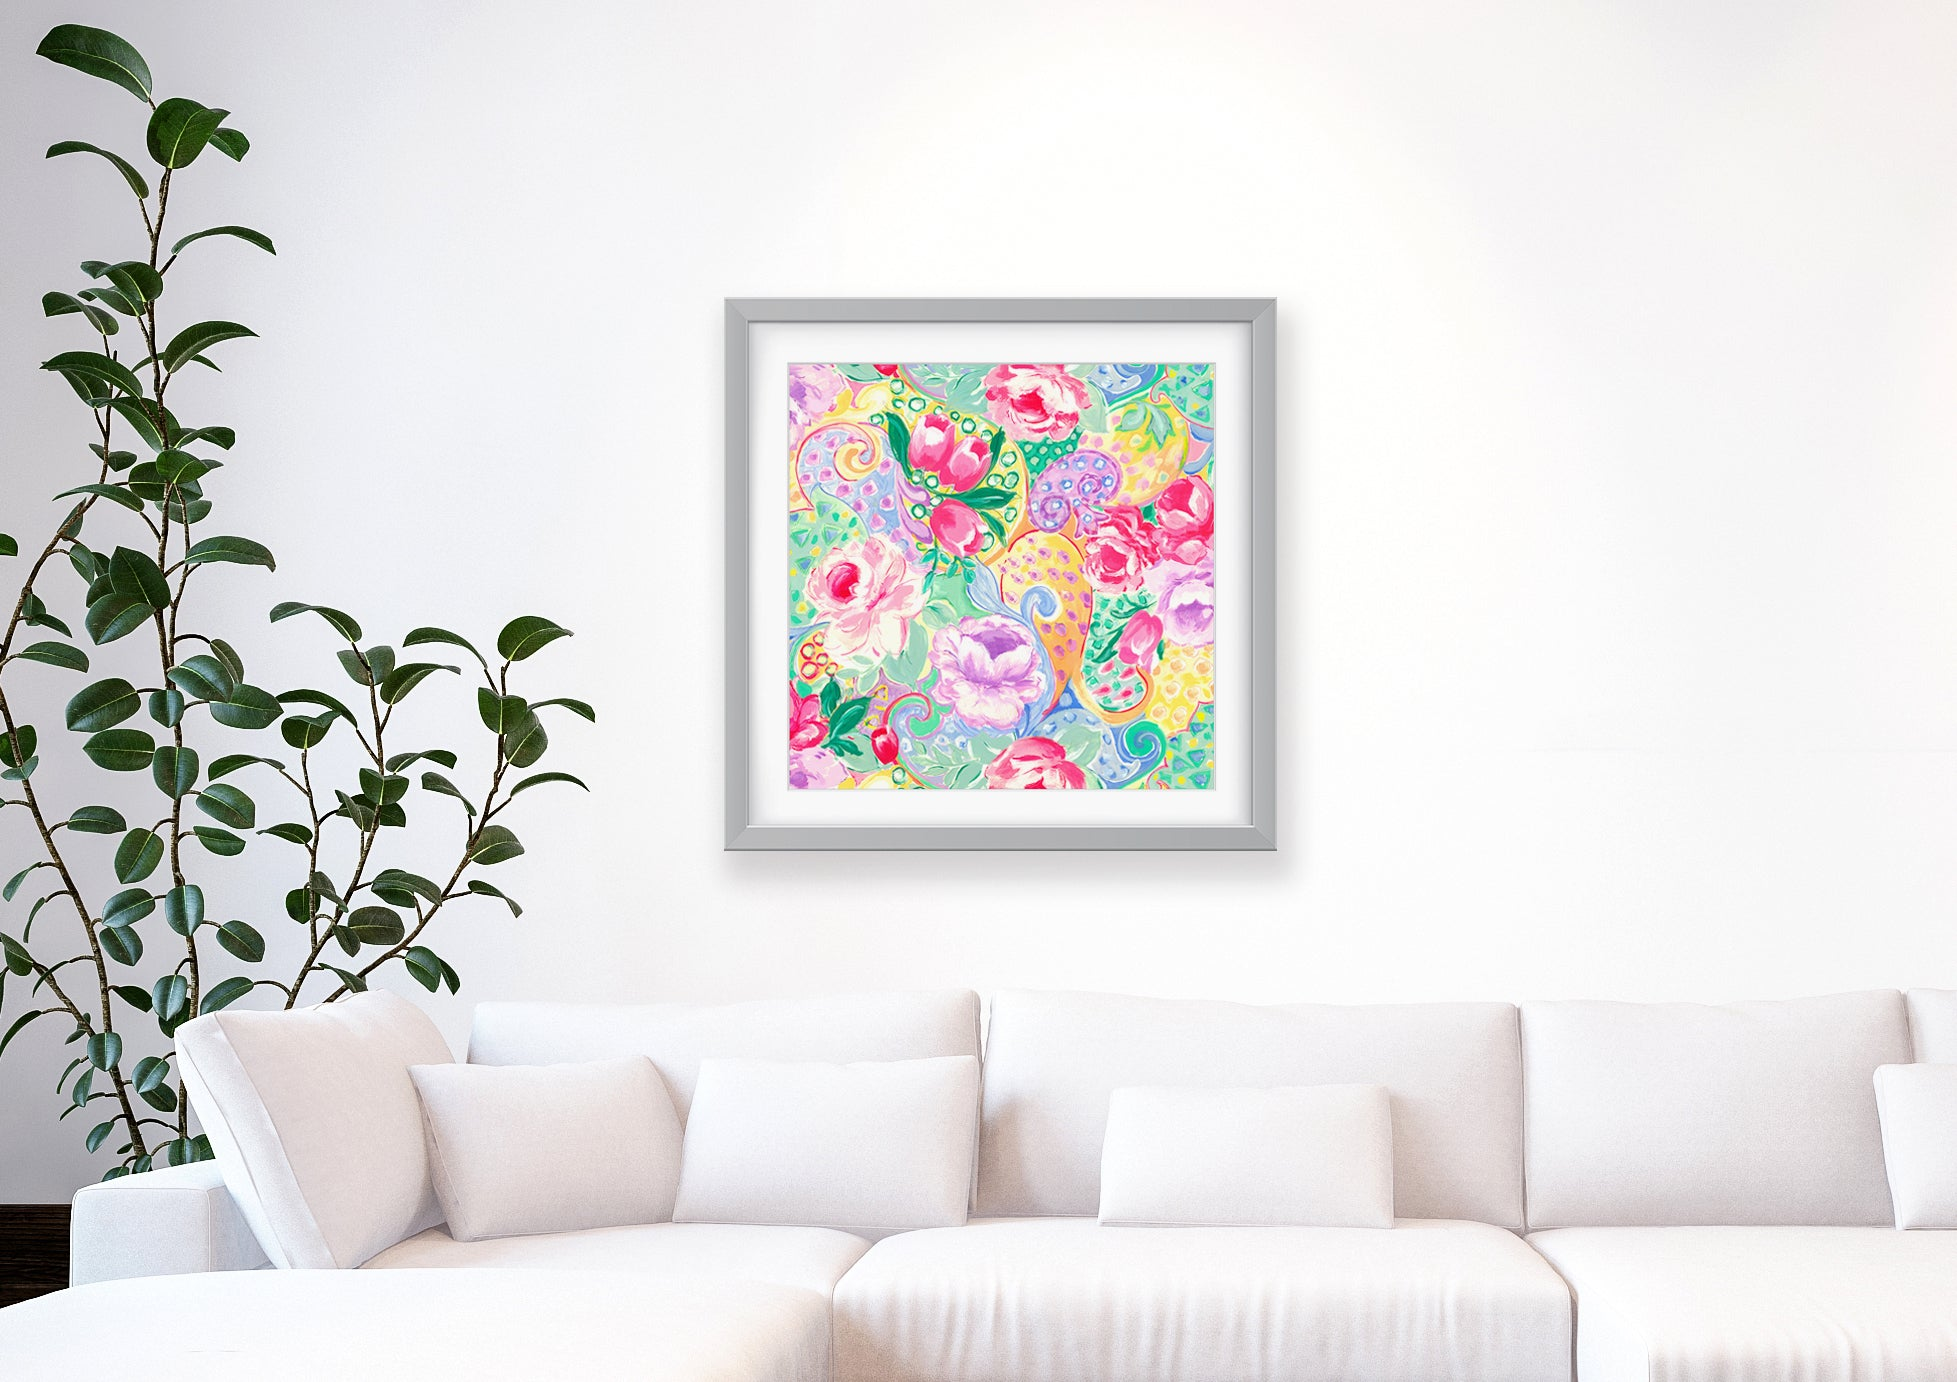 Tatulia Impressionist Art Print Di Lewis Living Room Wall Decor